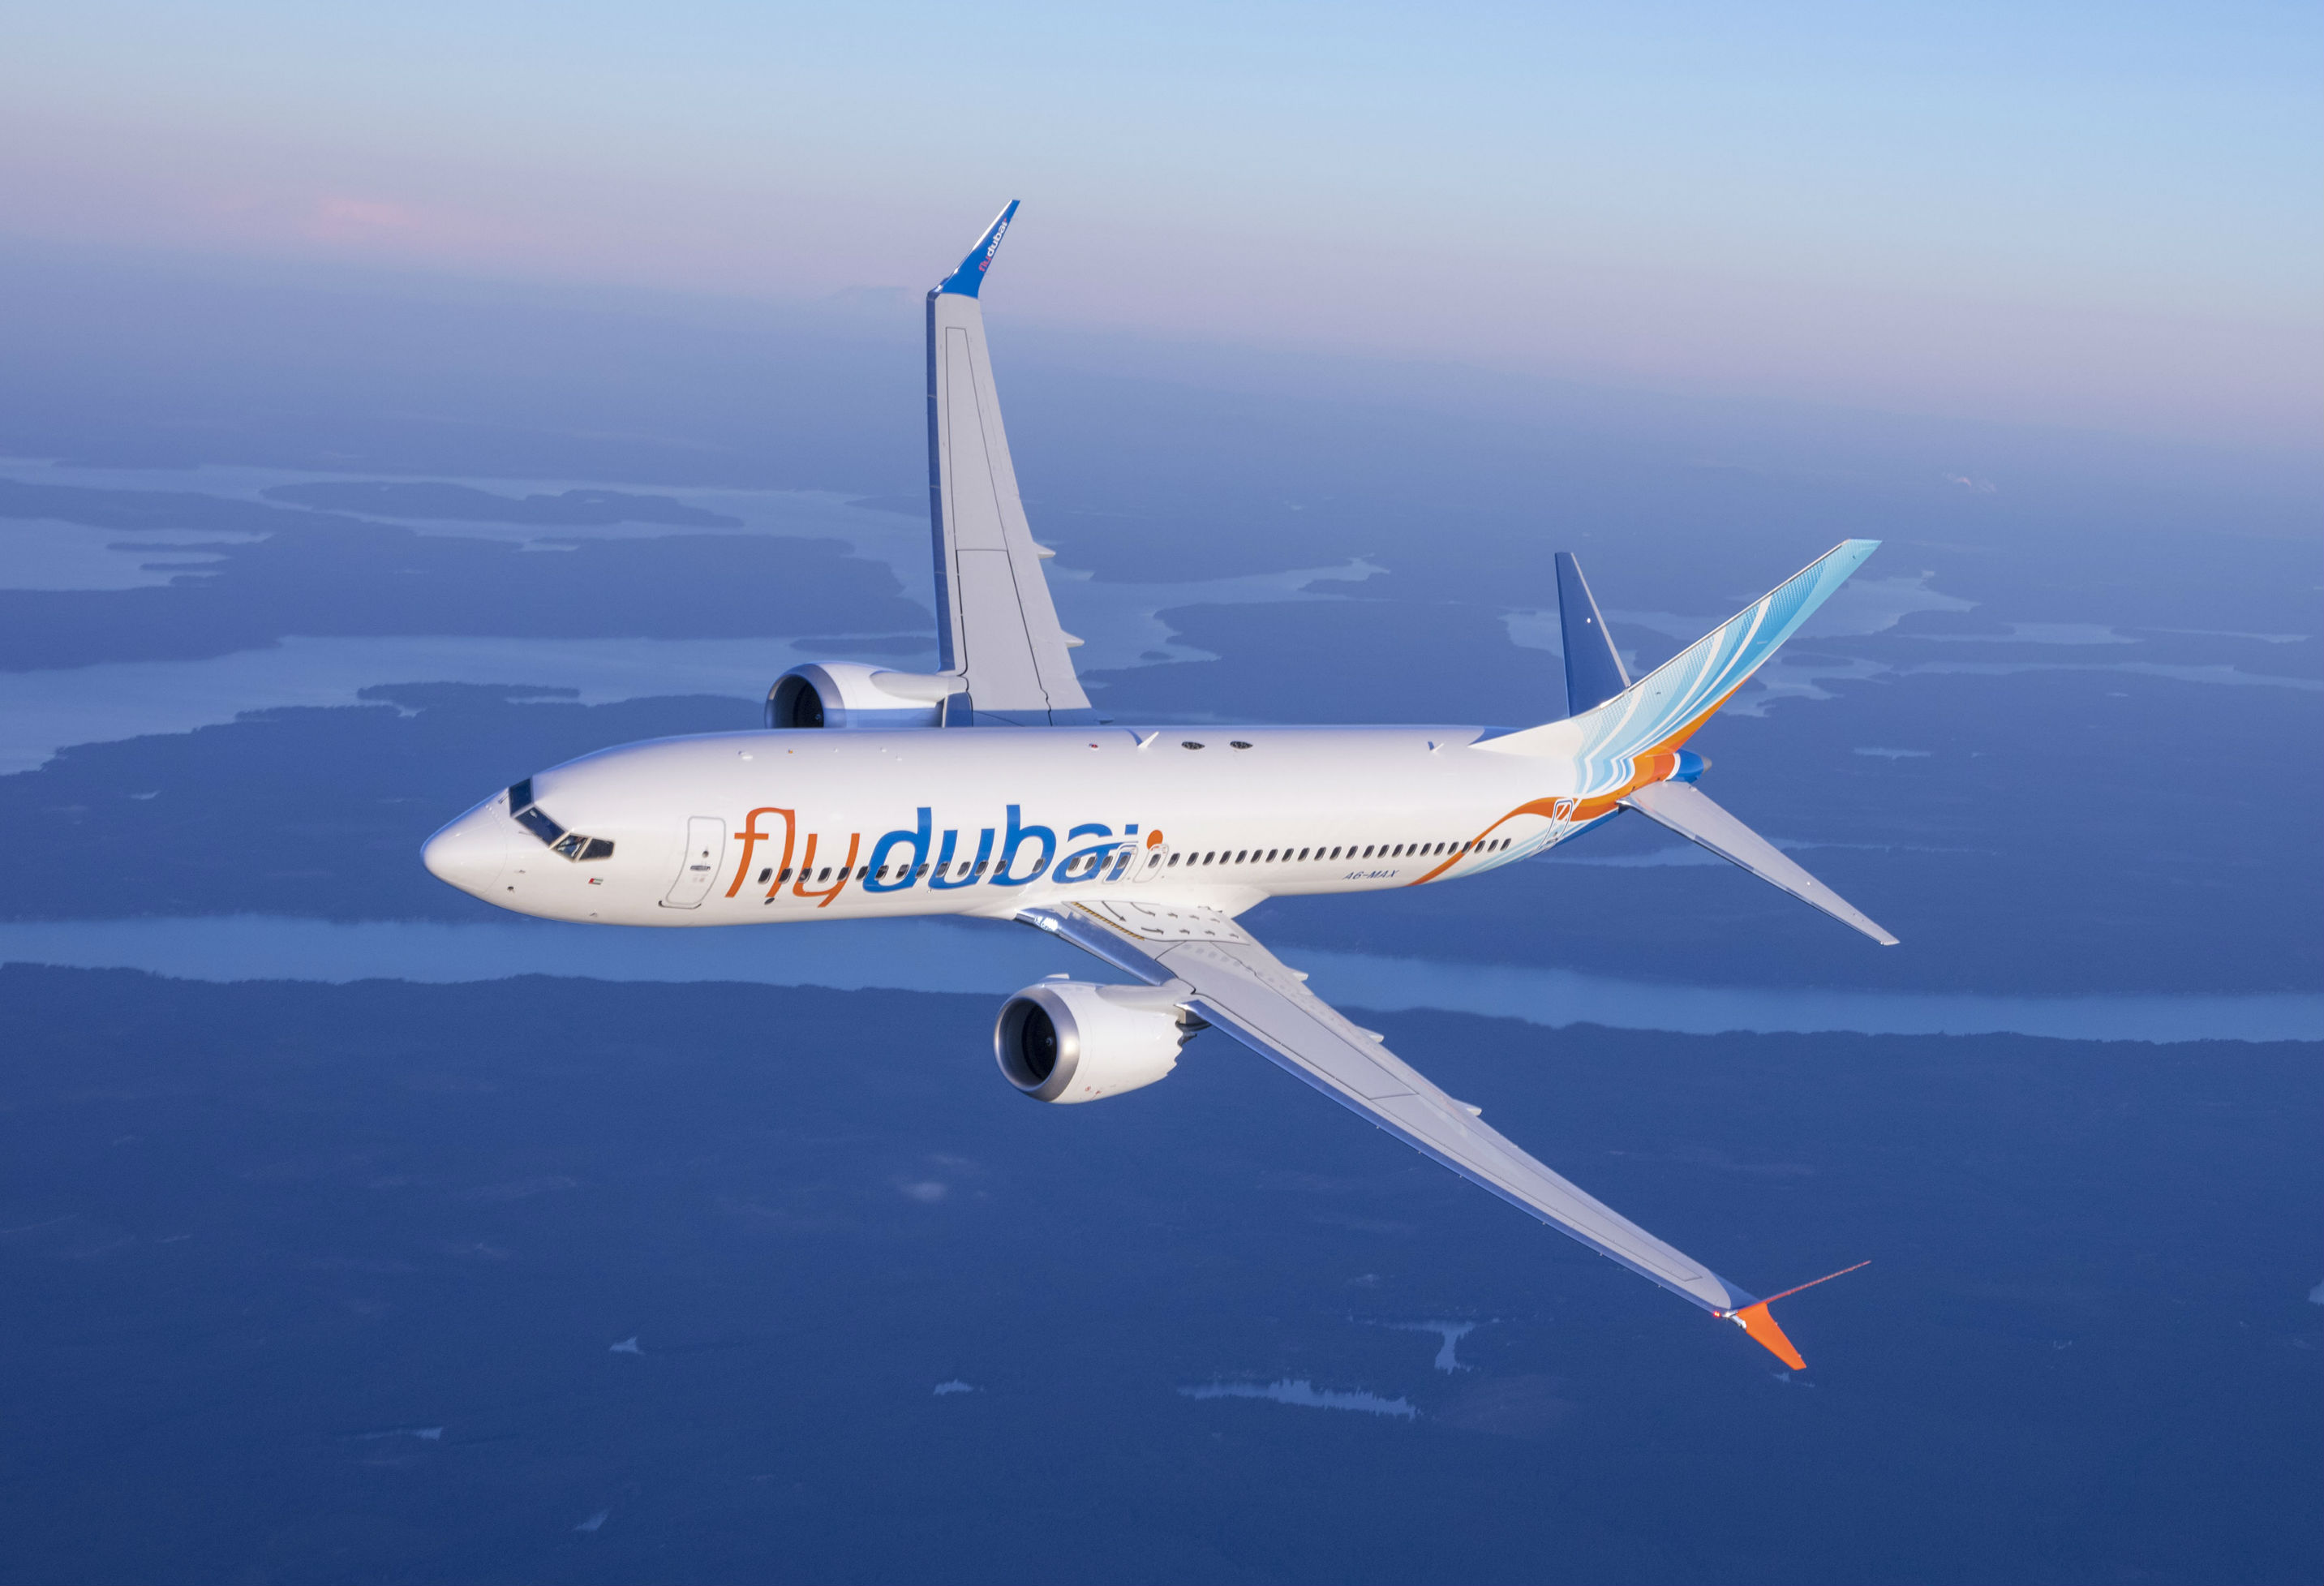 More than 50 of the first 175 airplanes will be 737 MAX 10s, and another portion of the order will be made up of the popular MAX 8 and MAX 9 aircraft. Flydubai Photo